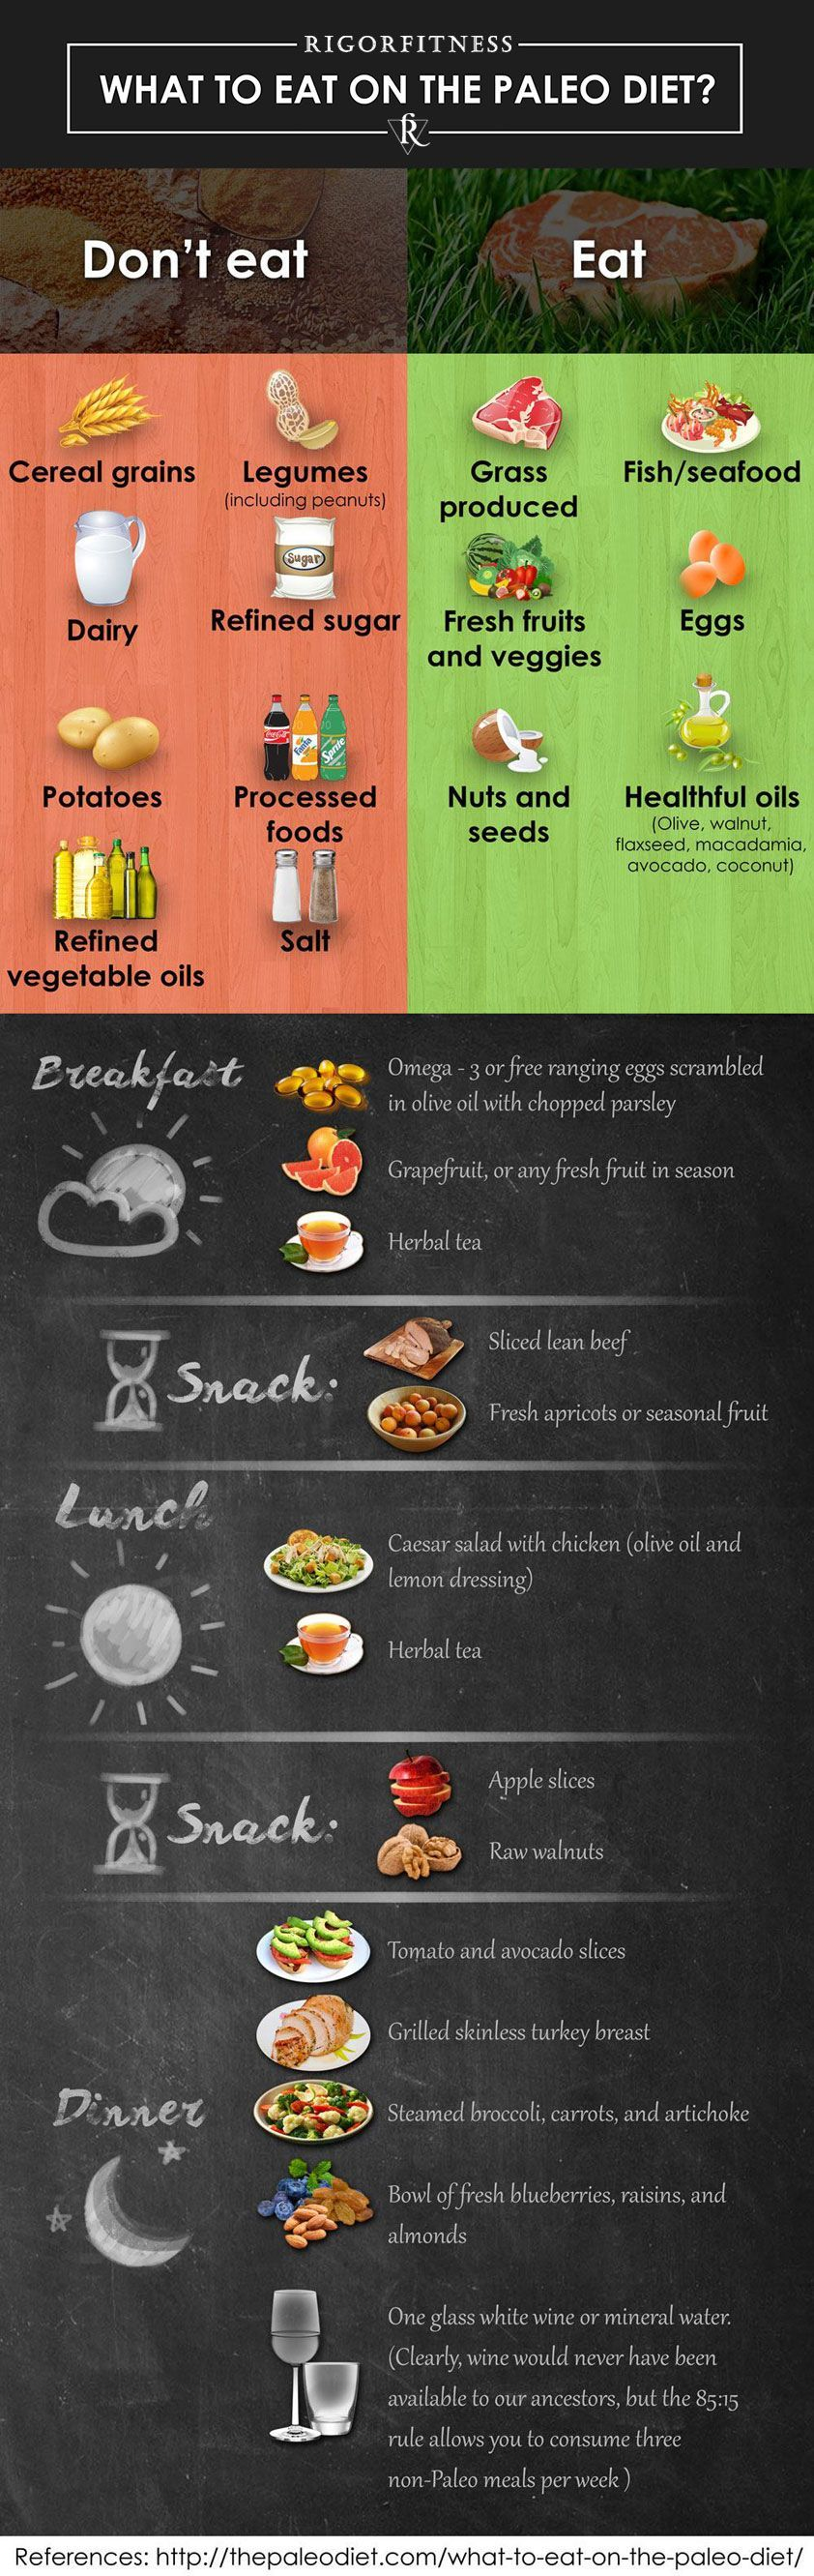 What The Paleo Diet Allows You To Eat - Infographic